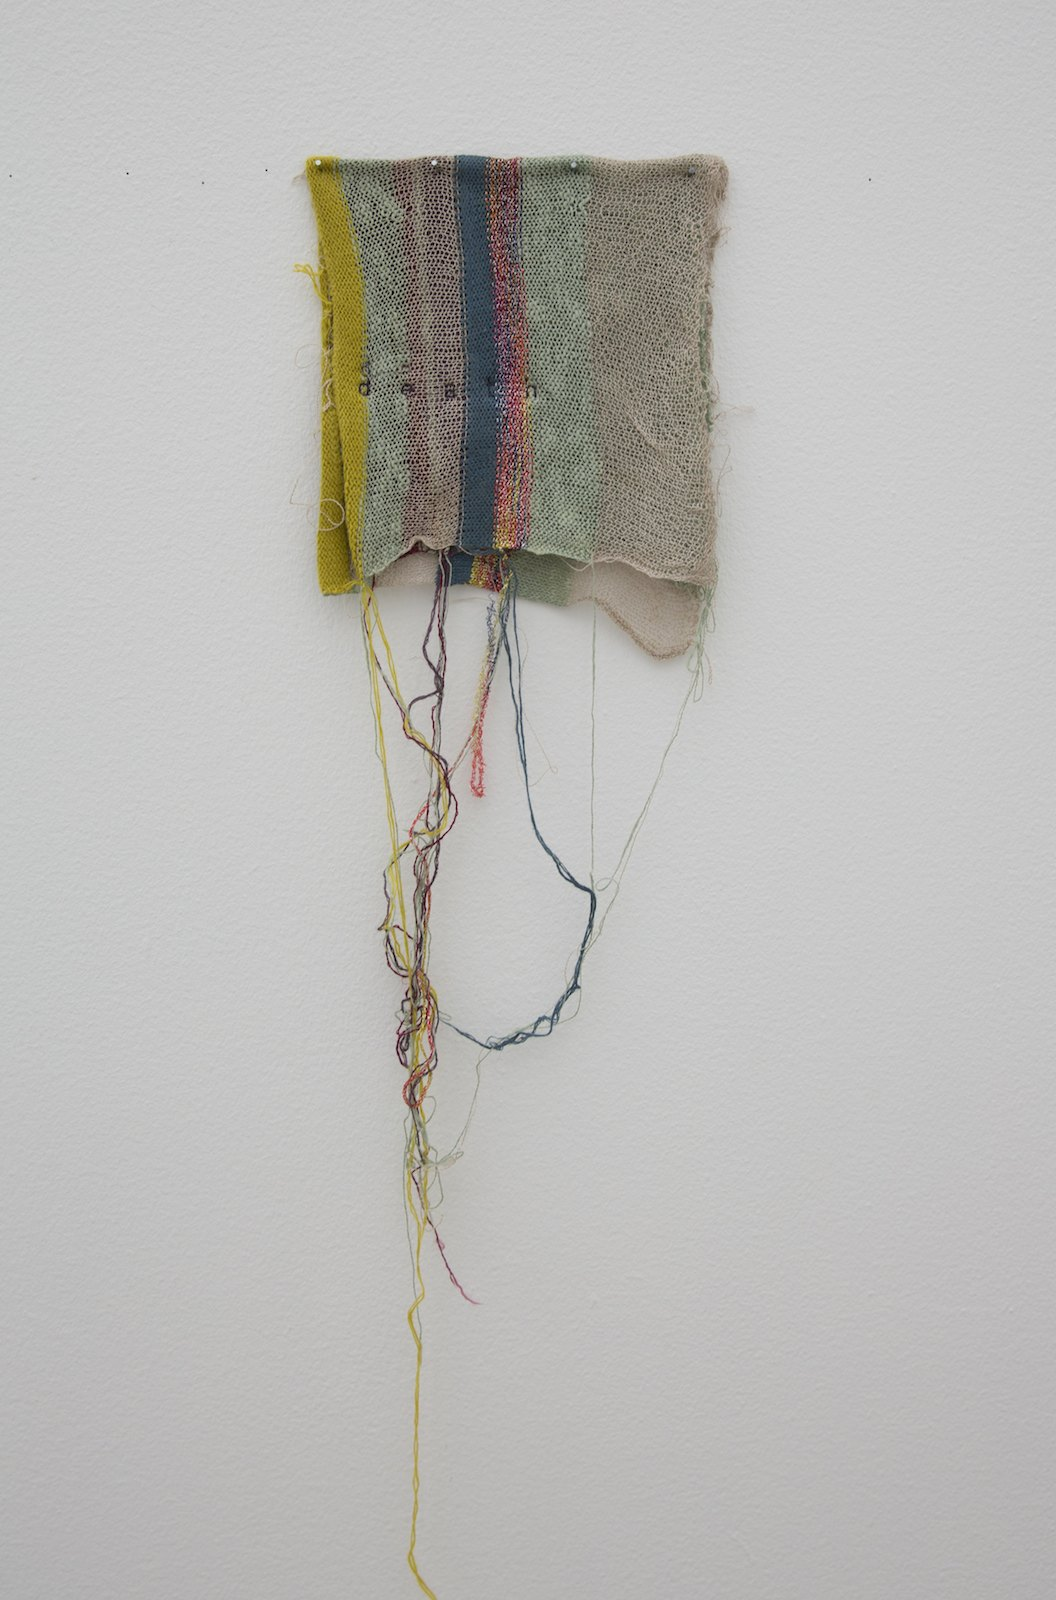 Death, 2014, knitting and embroidery, 79 x 23 cm